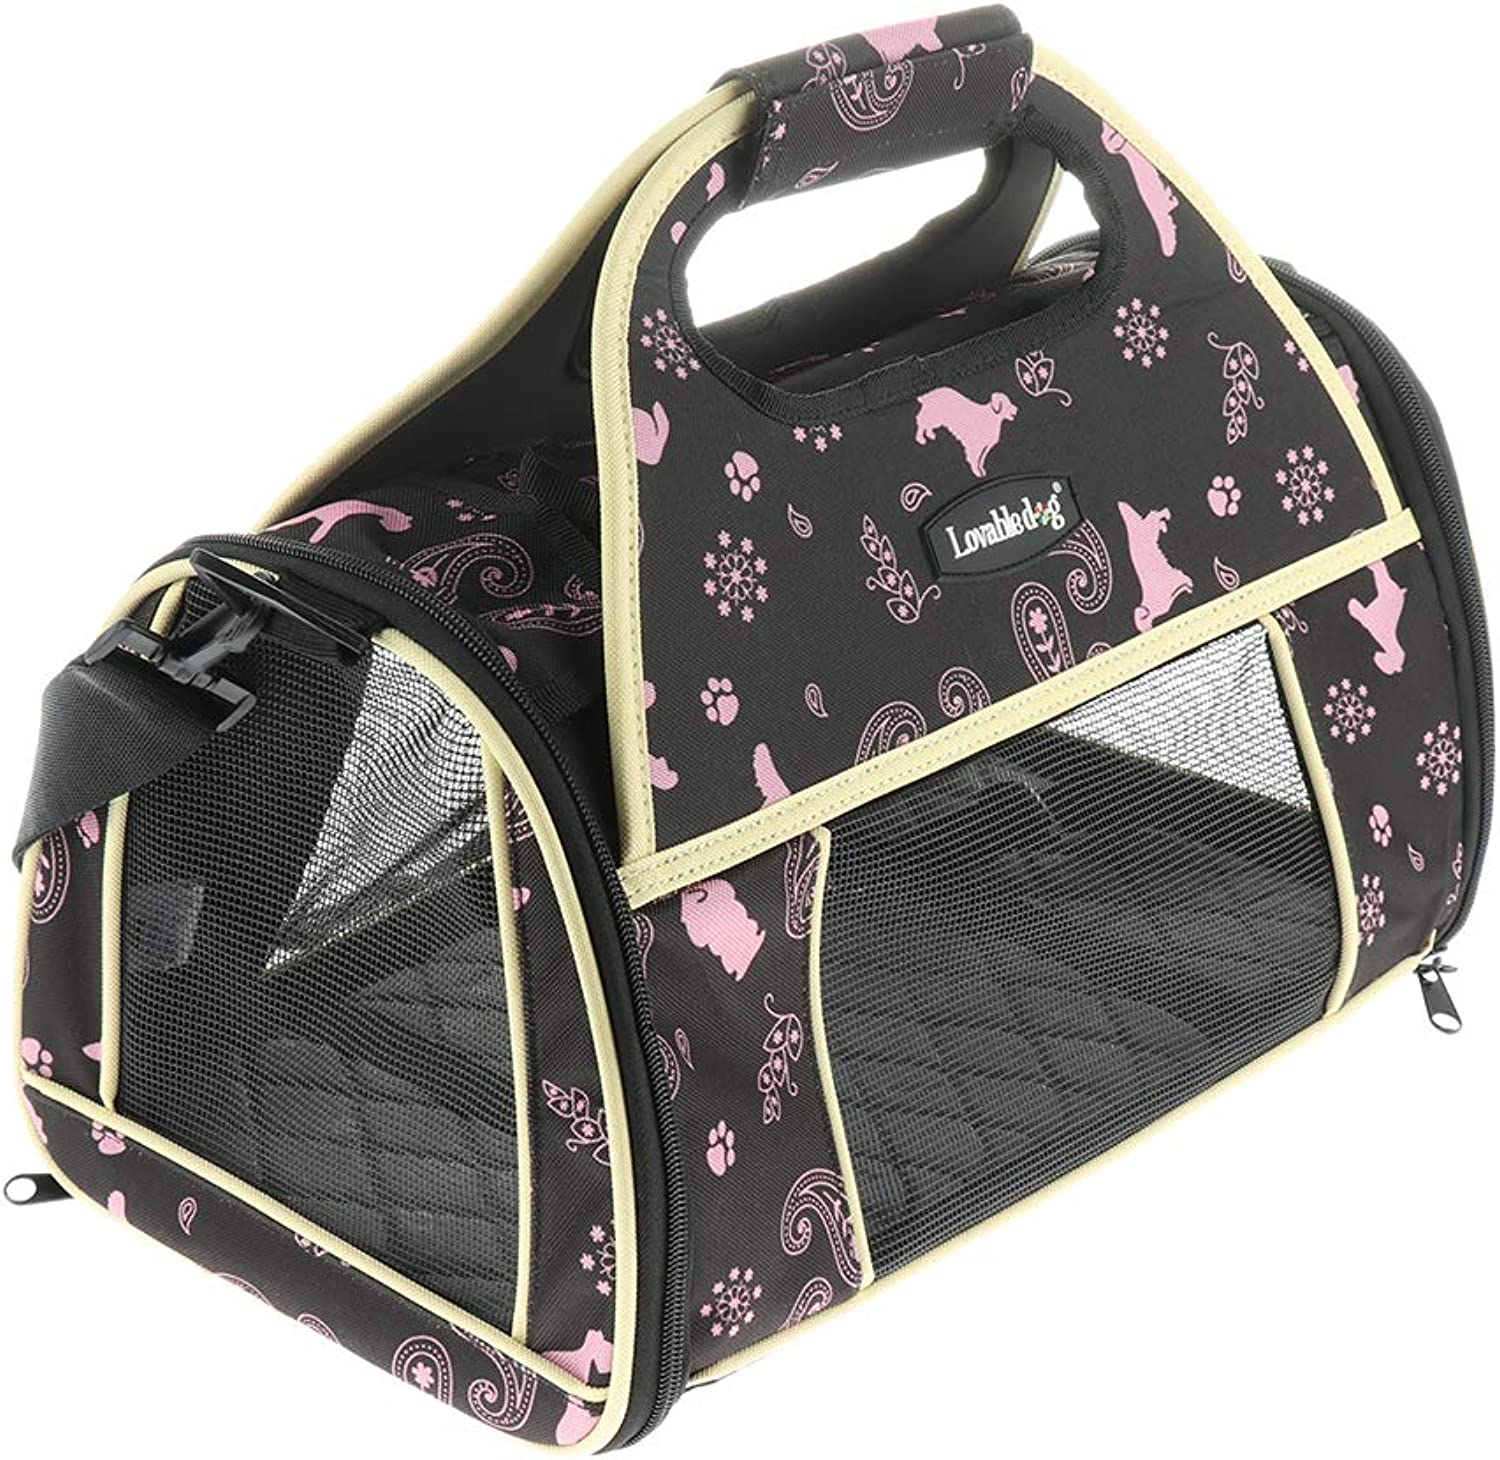 Baoblaze Pet Small Dog Cat Bed Mats House Foldable Travel Carrier Handbag Travel Puppy